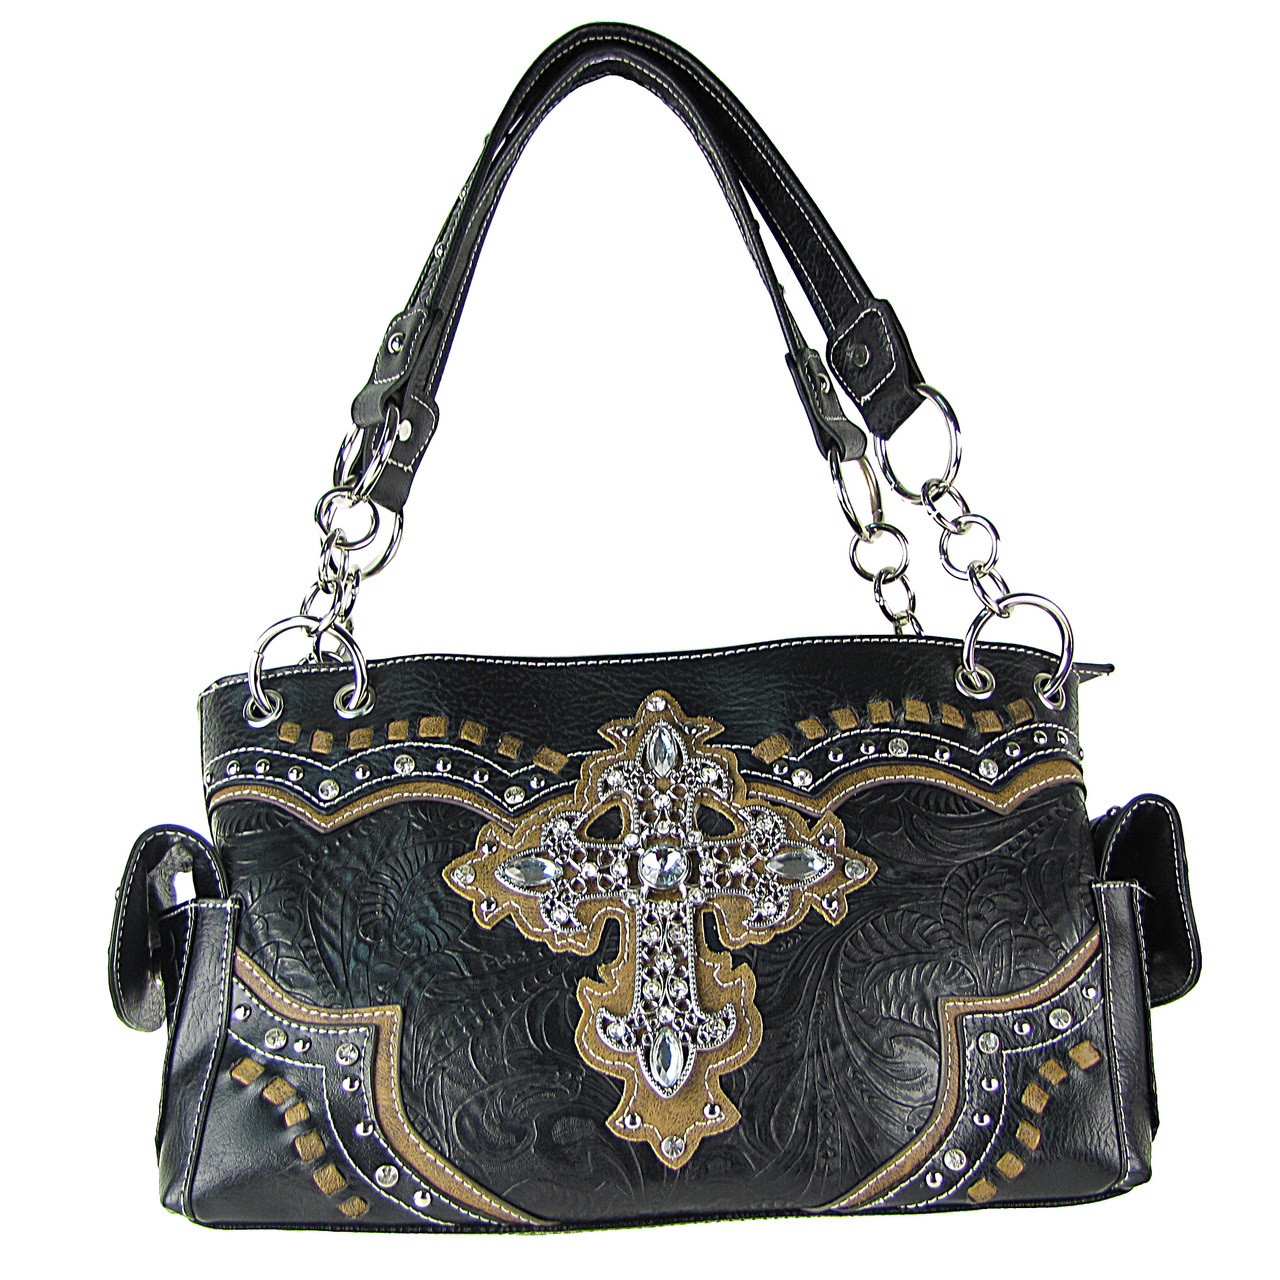 BLACK WESTERN RHINESTONE CROSS LOOK SHOULDER HANDBAG HB1-34LCRBLK